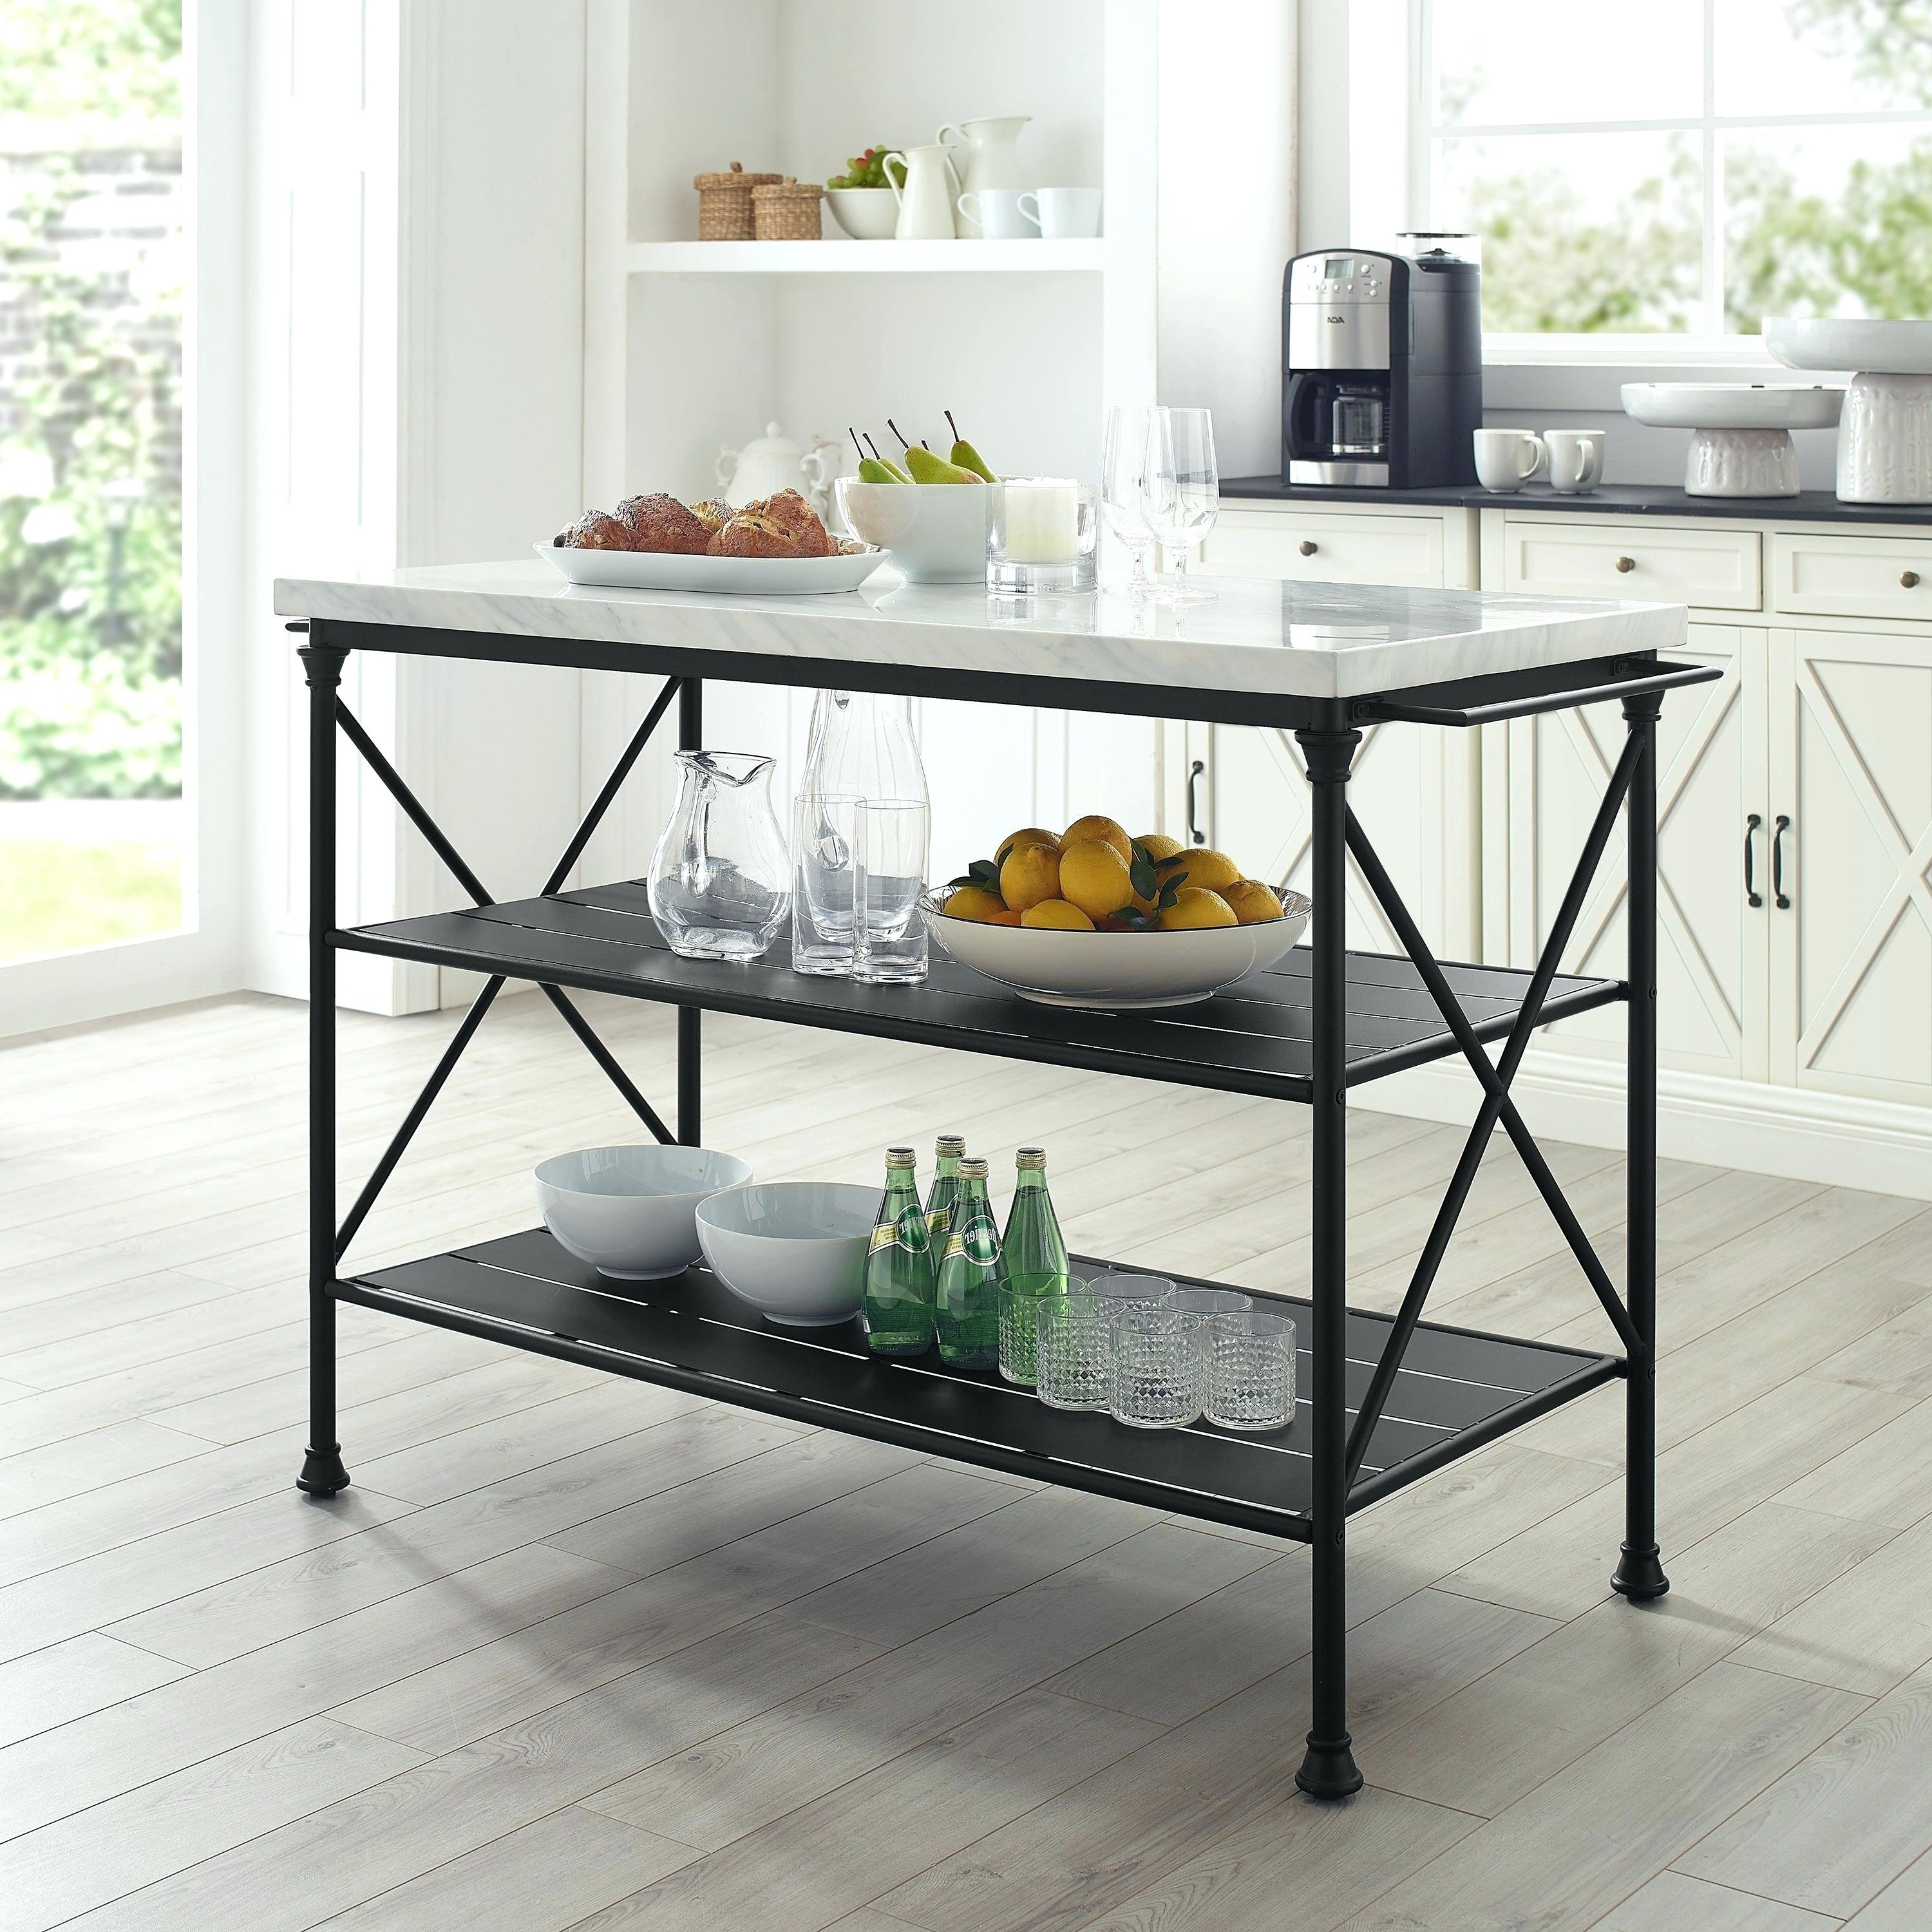 2019 Metal Kitchen Island – Quyenyeary (View 1 of 20)